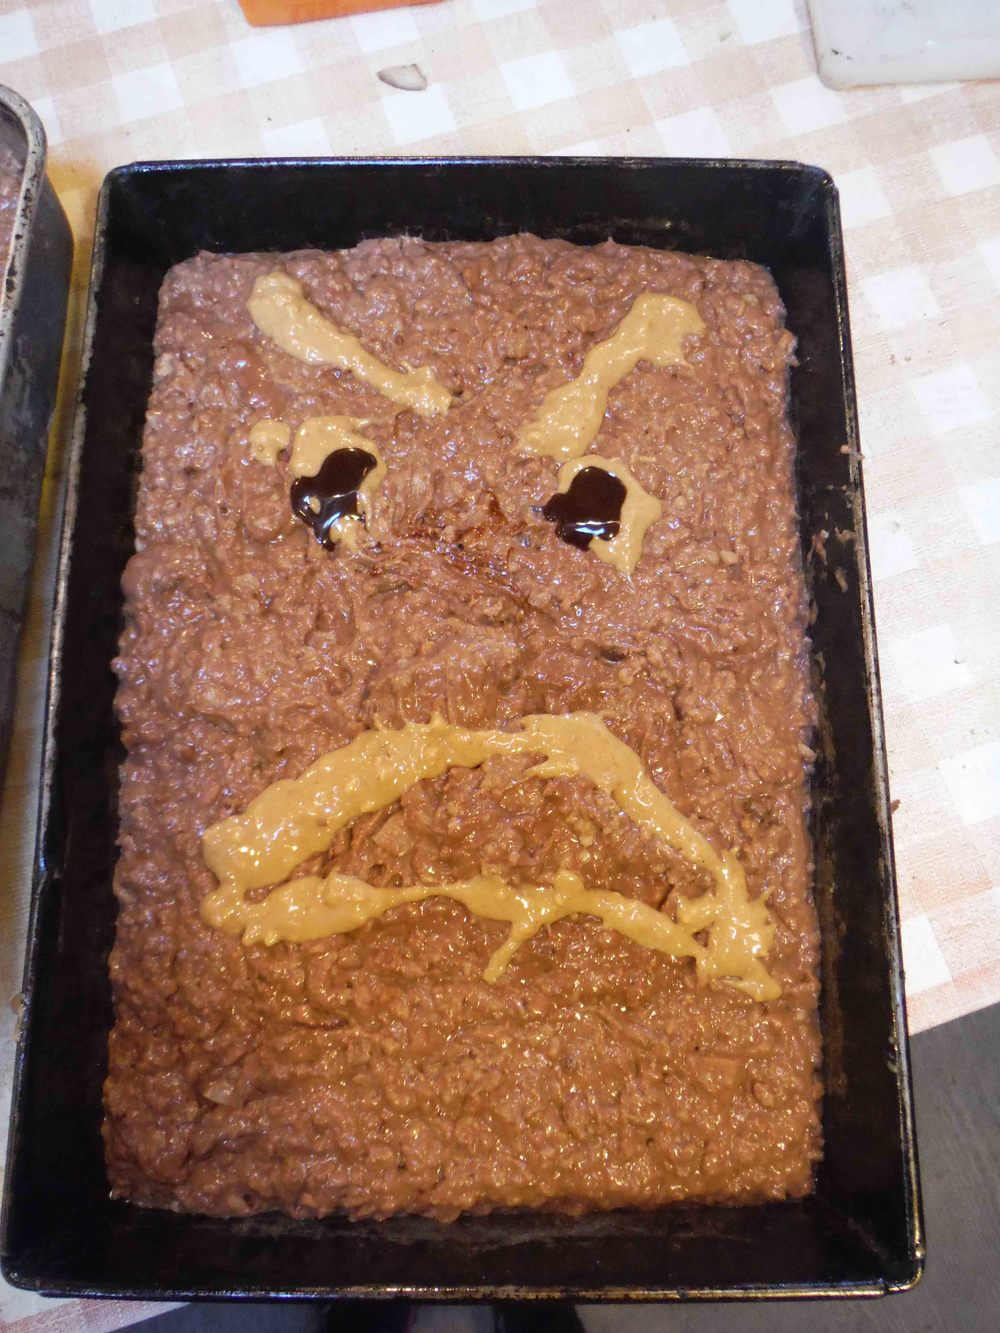 Angry brownies taste awesome.  Photo by Sarah Bouckoms